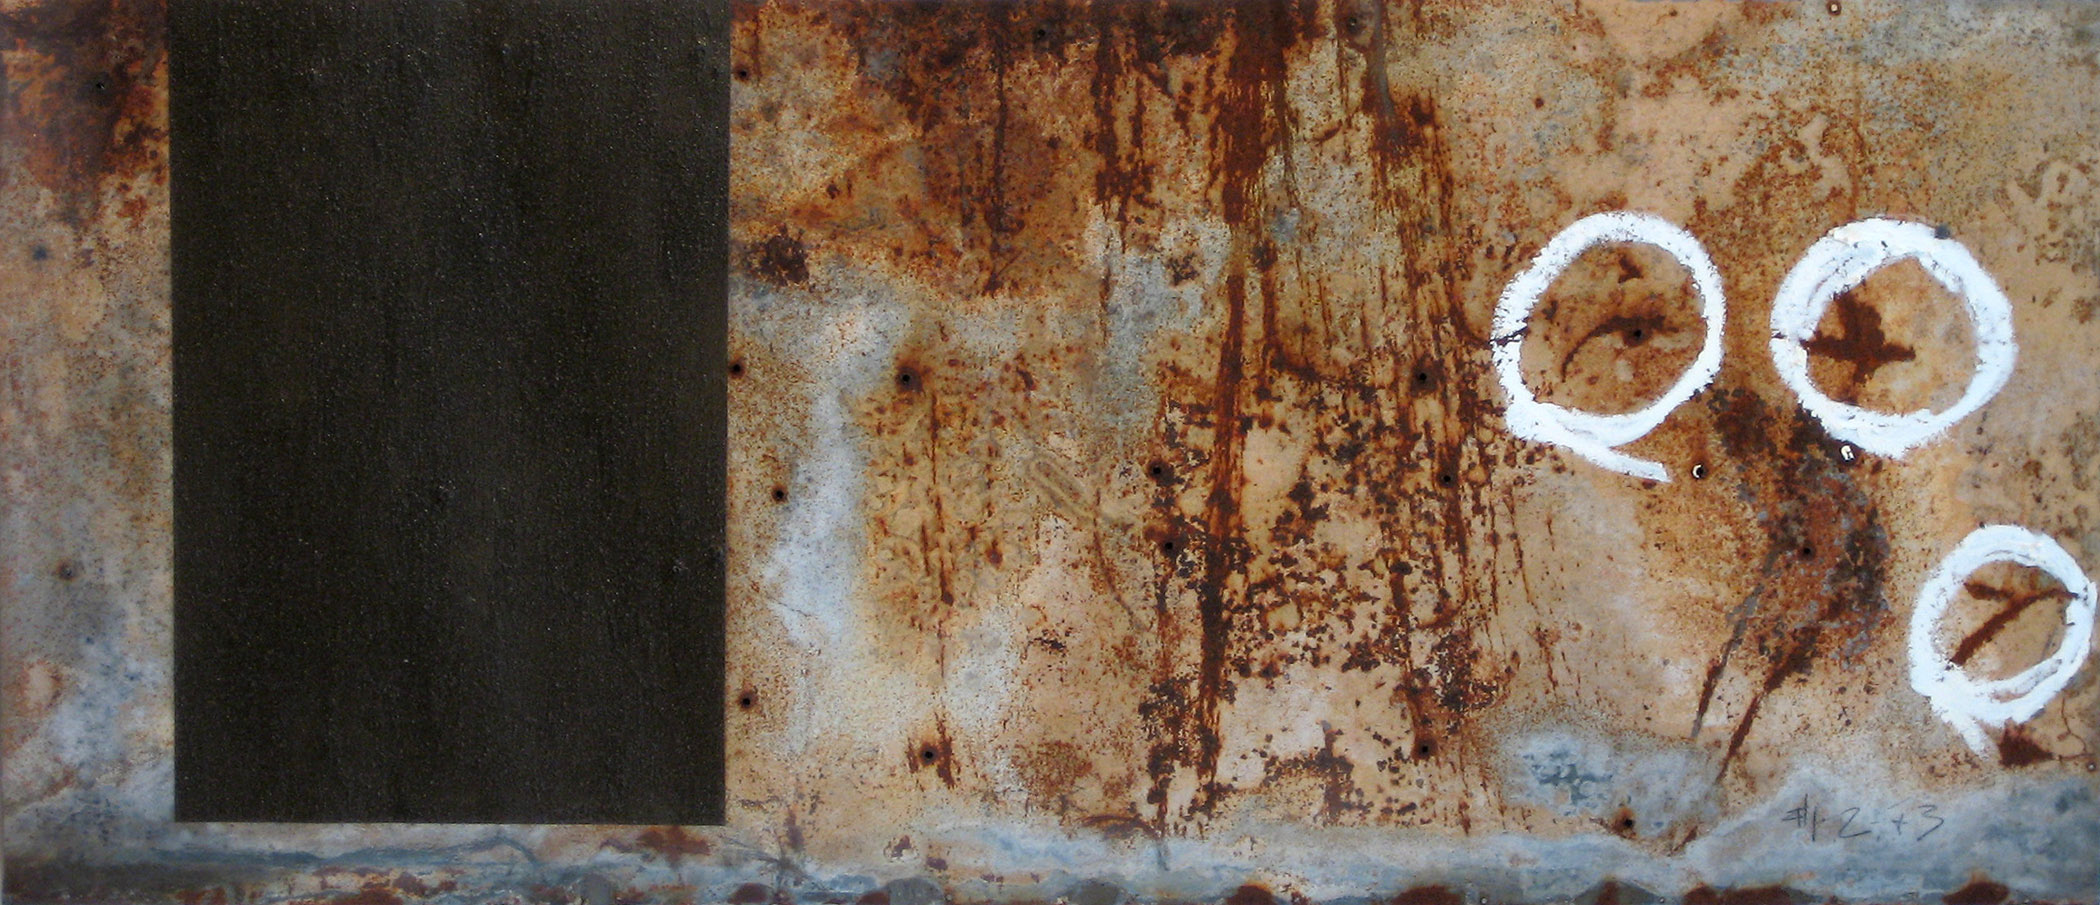 "#1, 2 + 3    19"" x 41.5""  Oil stick, graphite, varnish, dirt, on found metal   Price upon request"